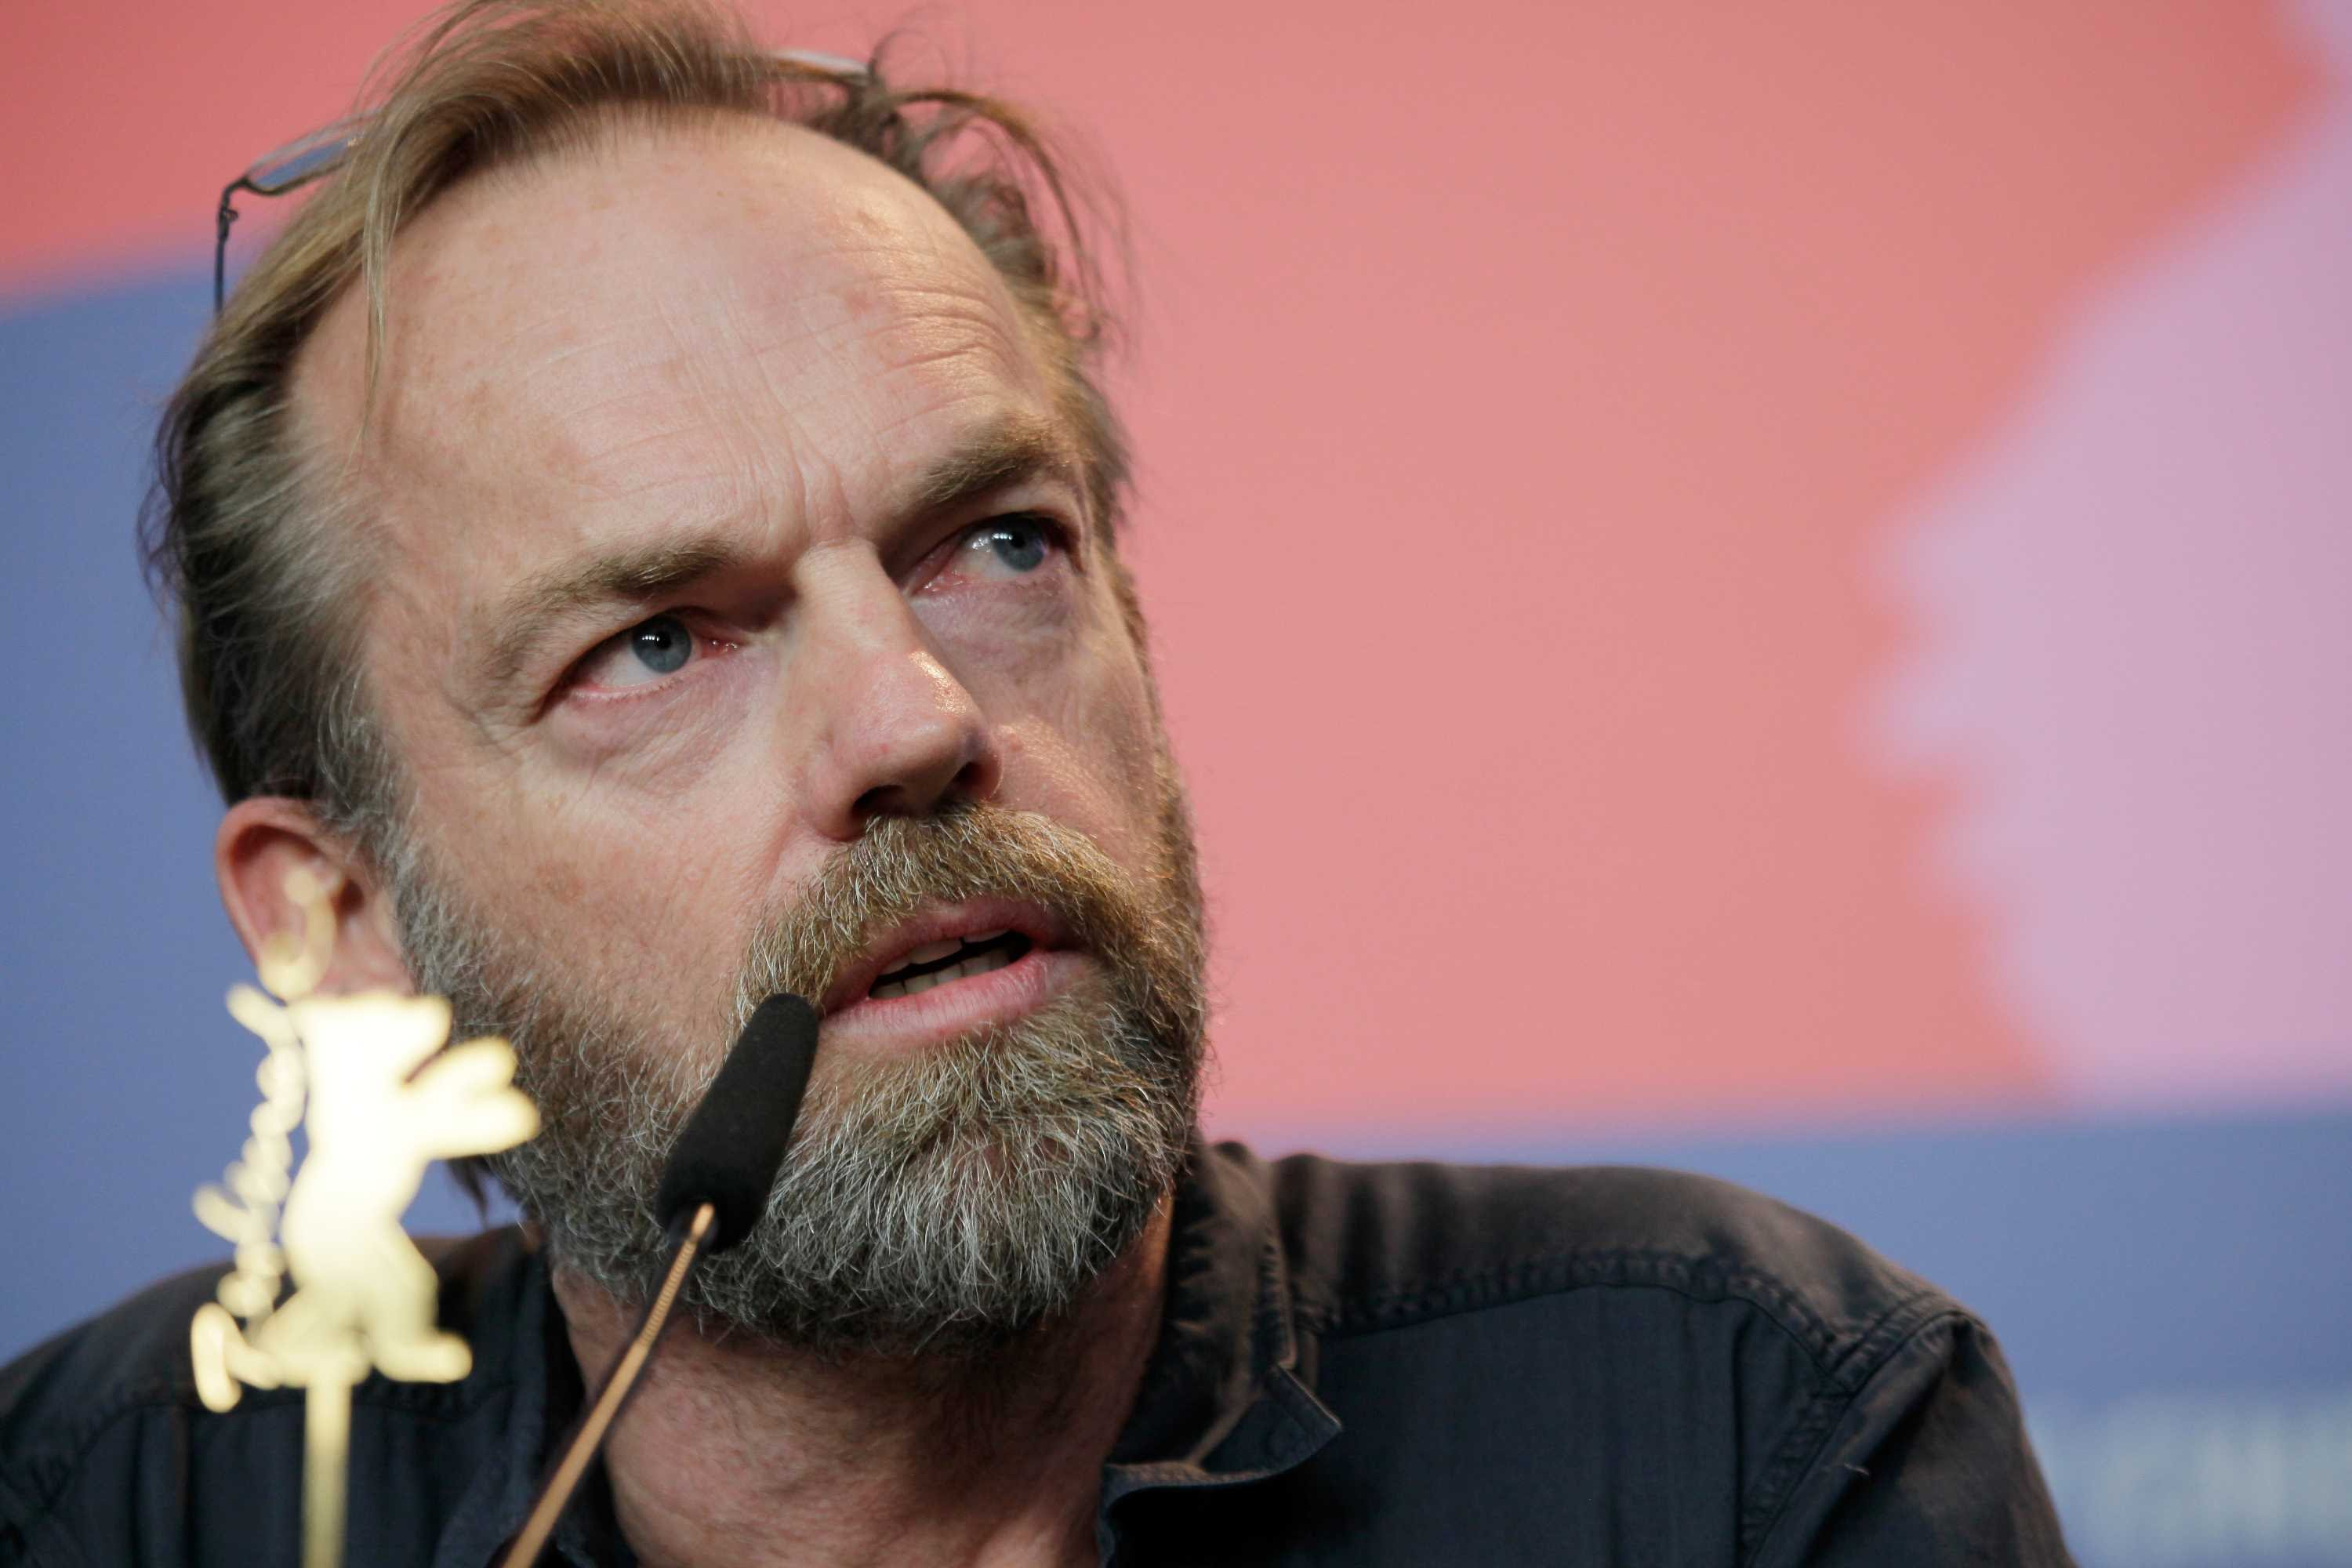 Hugo Weaving Background